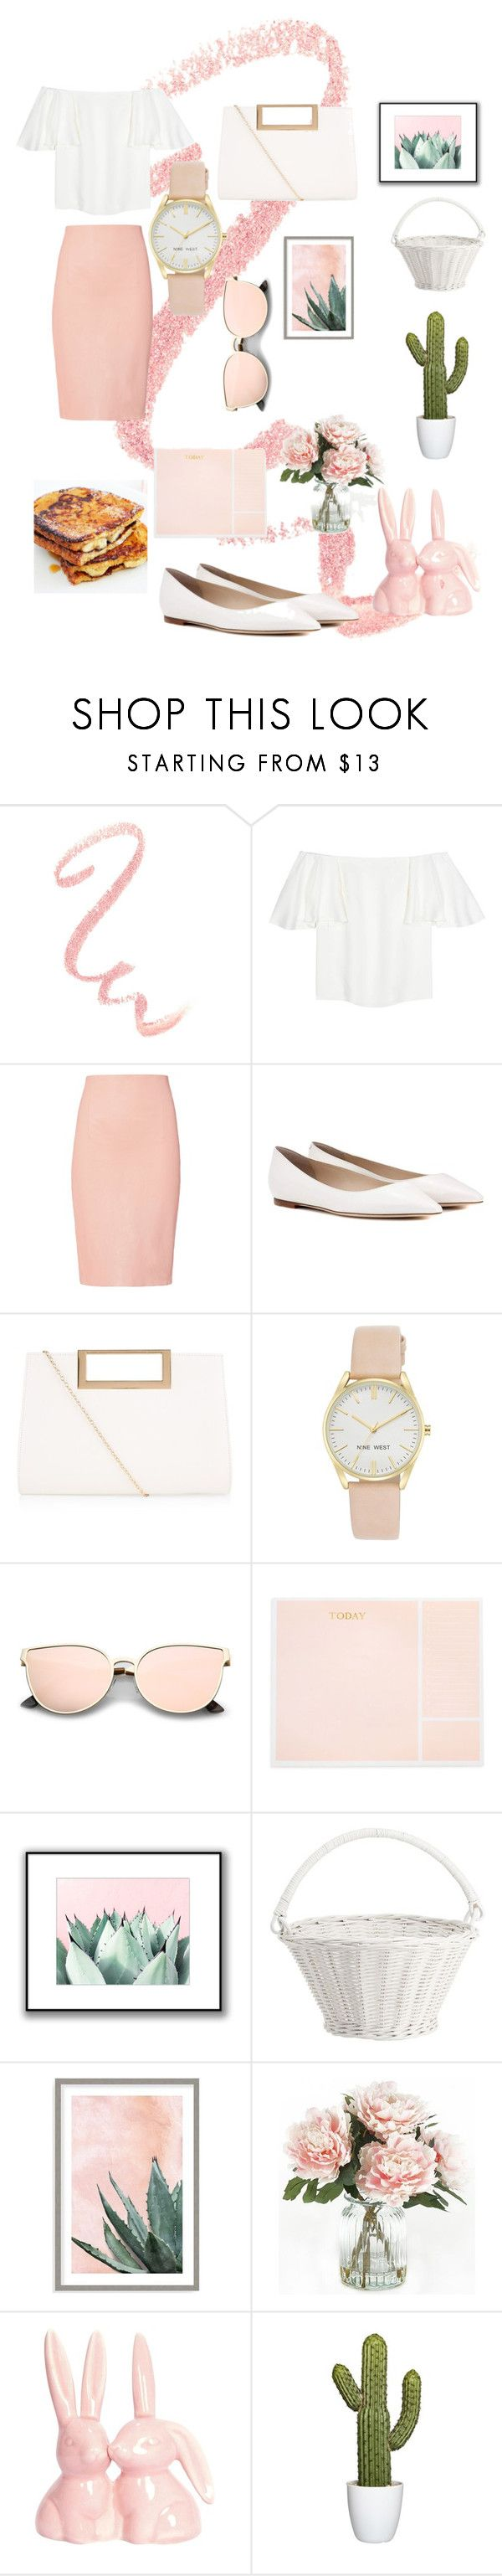 """""""National Pink Day"""" by nubianprincess1999 ❤ liked on Polyvore featuring Valentino, ThePerfext, Jimmy Choo, New Look, Nine West, Sugar Paper, Pottery Barn, Art Addiction, Home Decorators Collection and French Toast"""